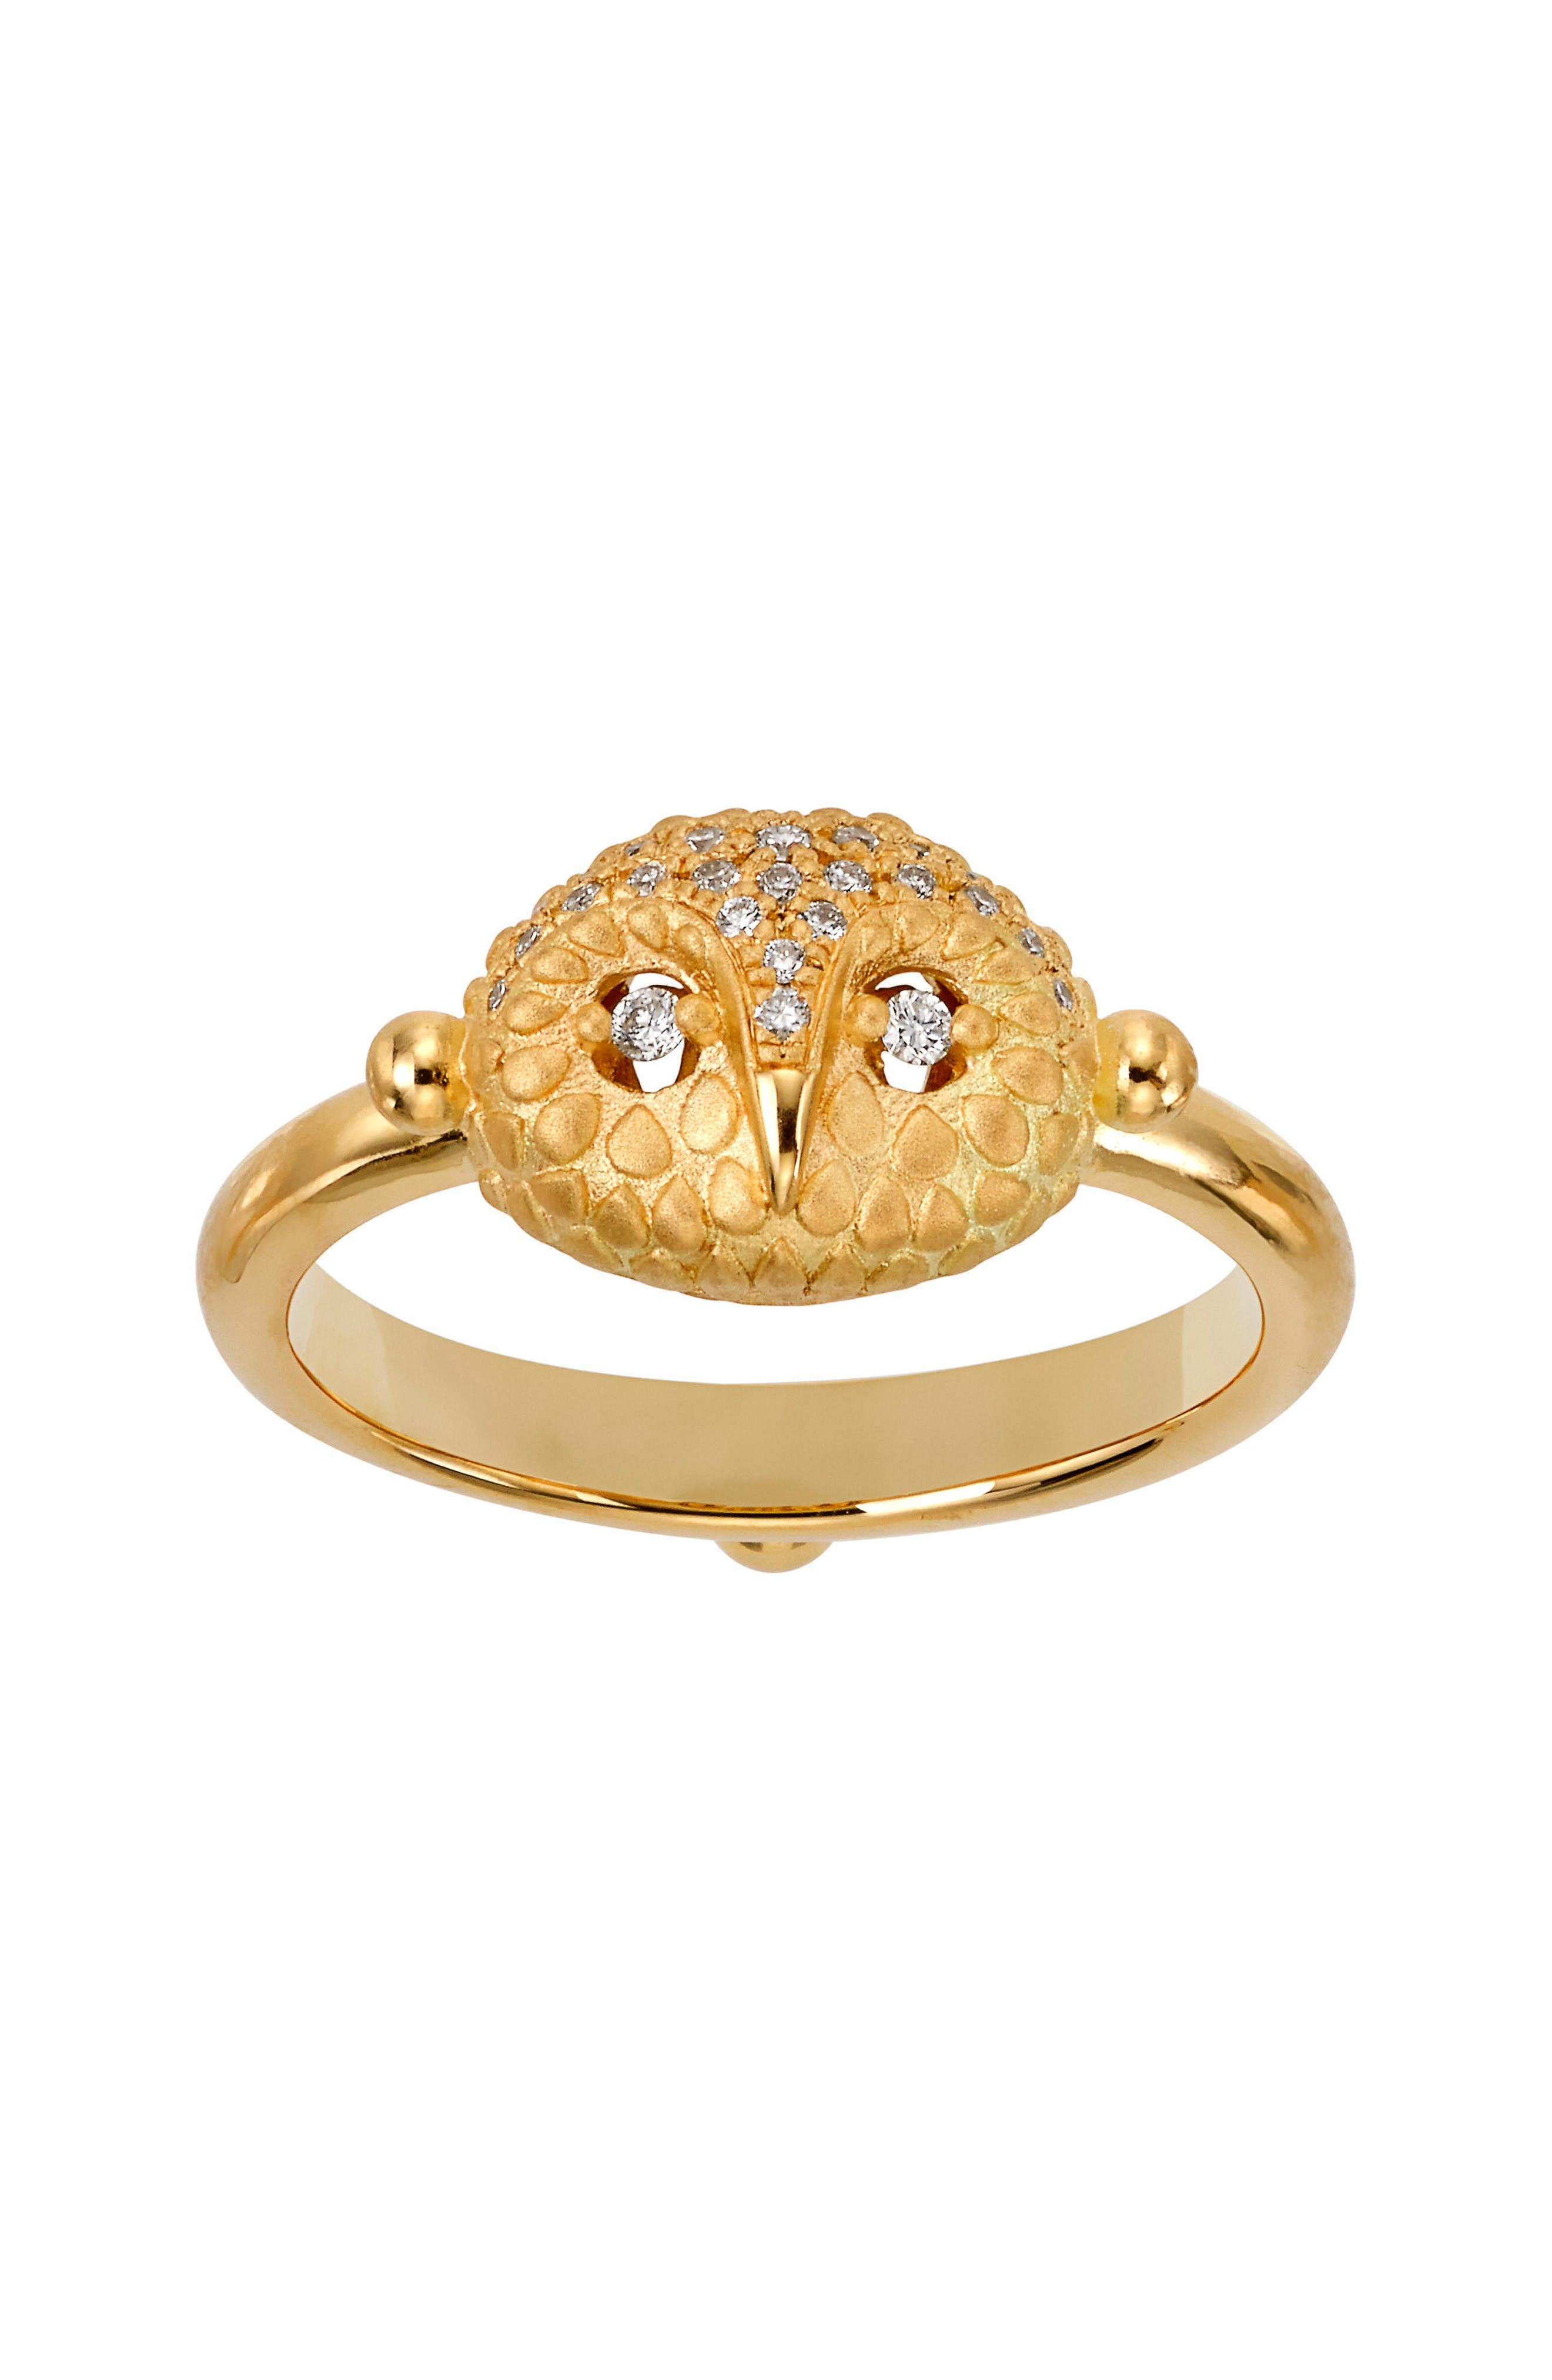 Temple St. Clair Diamond Owl Ring,                         Main,                         color, Yellow Gold